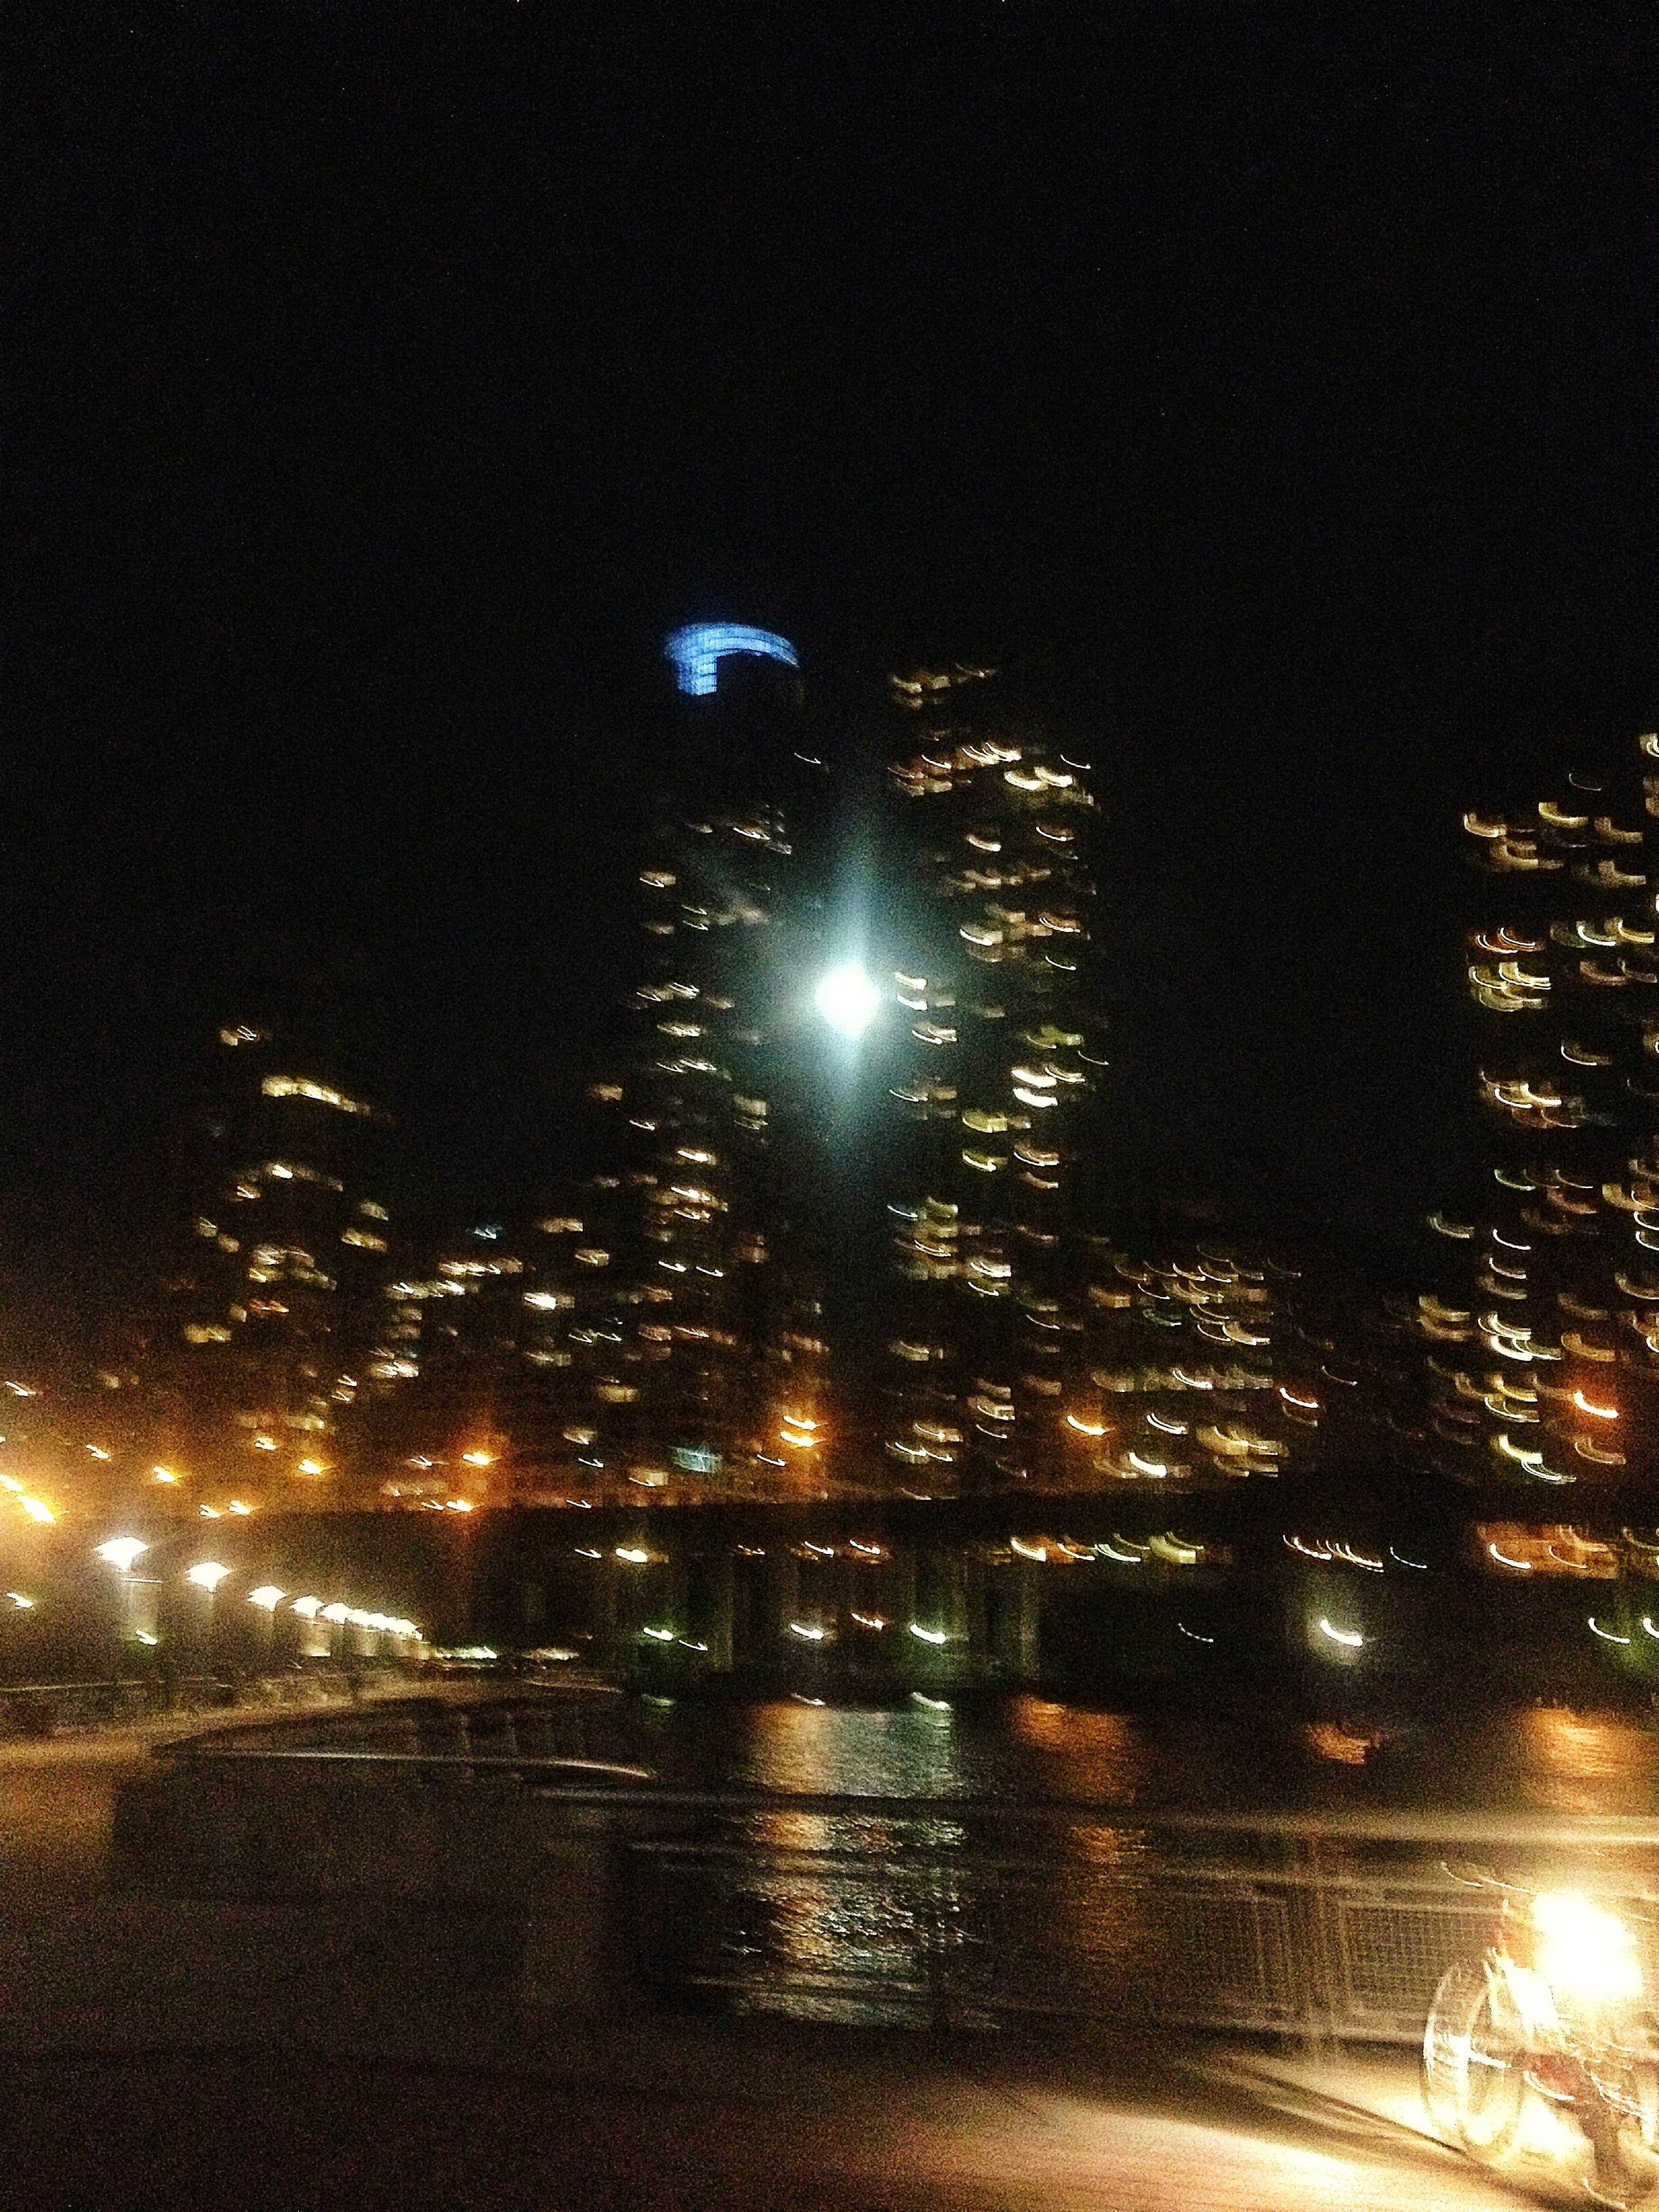 salsa and chips on pier 66 with a full moon rising